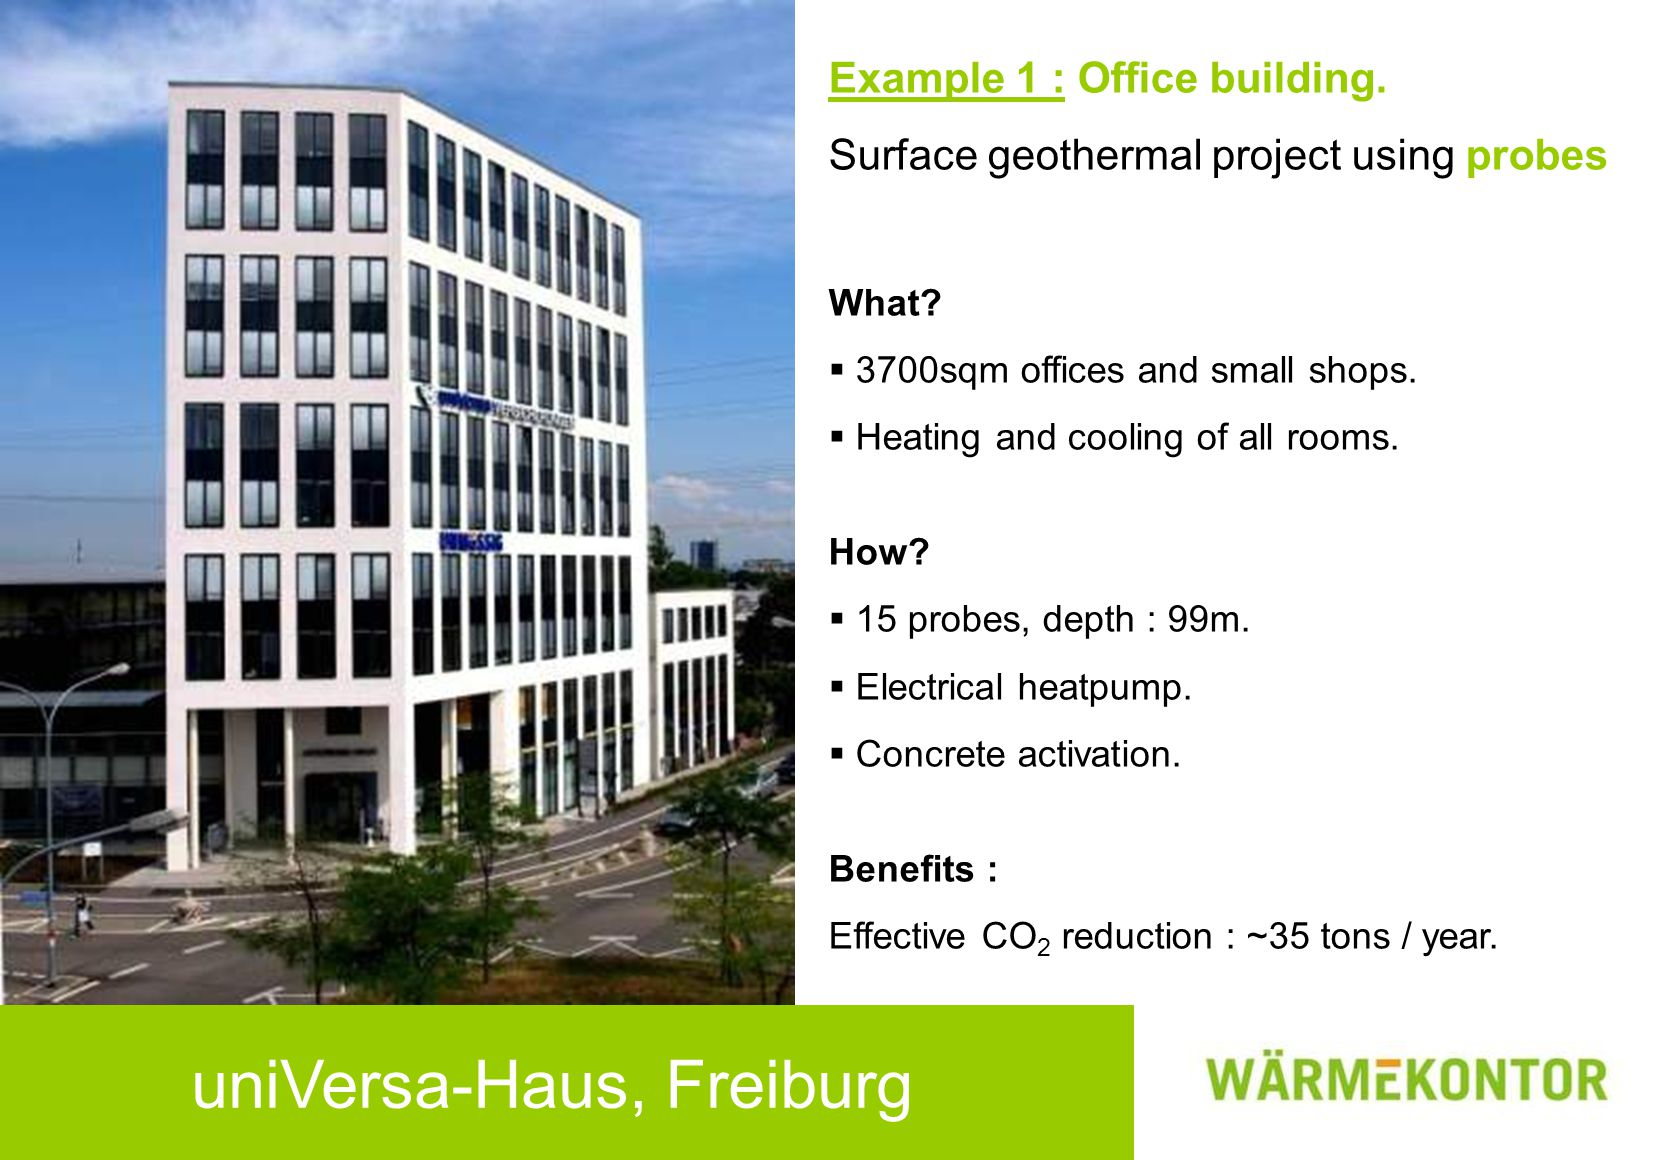 uniVersa-Haus, Freiburg Example 1 : Office building.